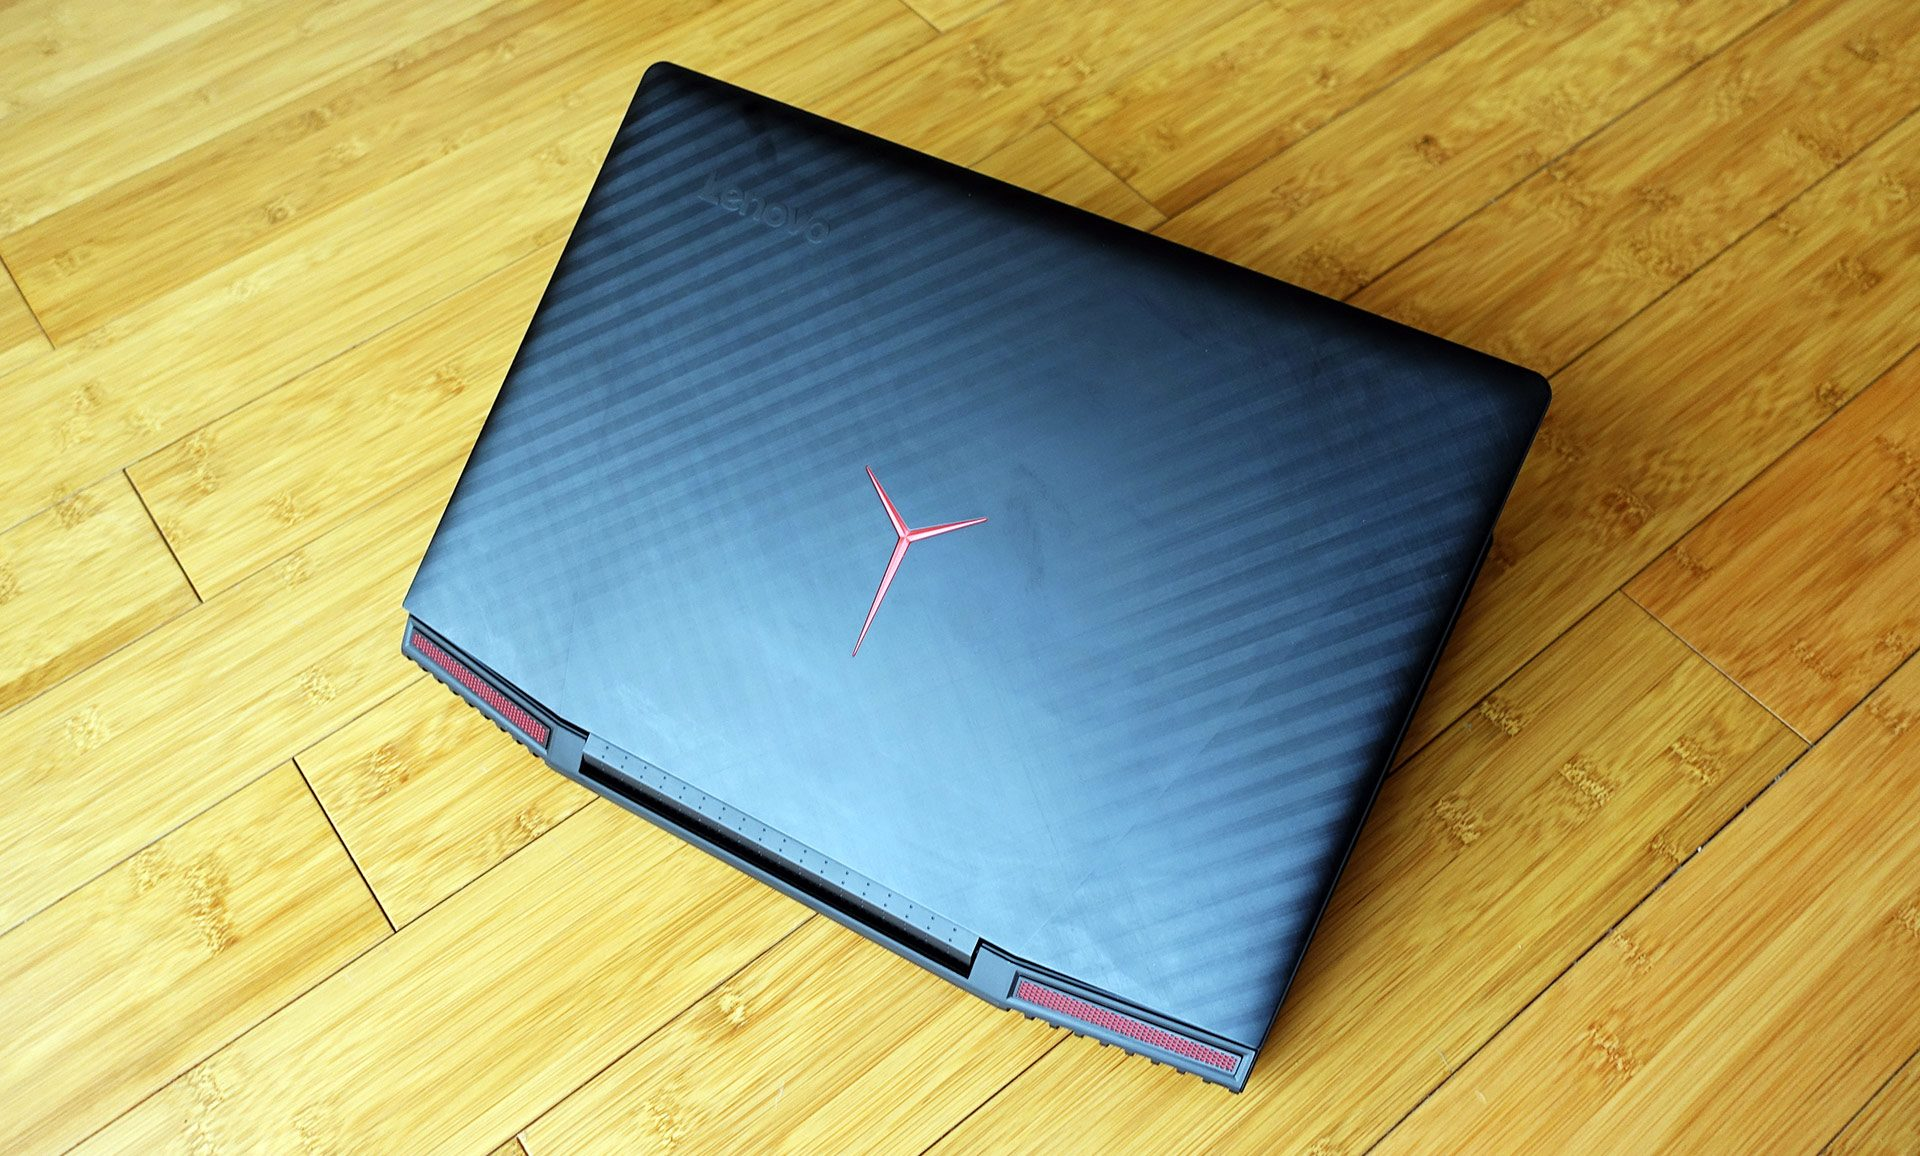 Lenovo Legion Y720 Review I7 7700hq Gtx 1060 Solid Mid Range Unique Laptop Cooling Pad Is 668 The Laptops Front Lip A Little Tall And Uncomfortable Theres No Sd Card Slot Its Price Perhaps Higher Than Youd Expect From